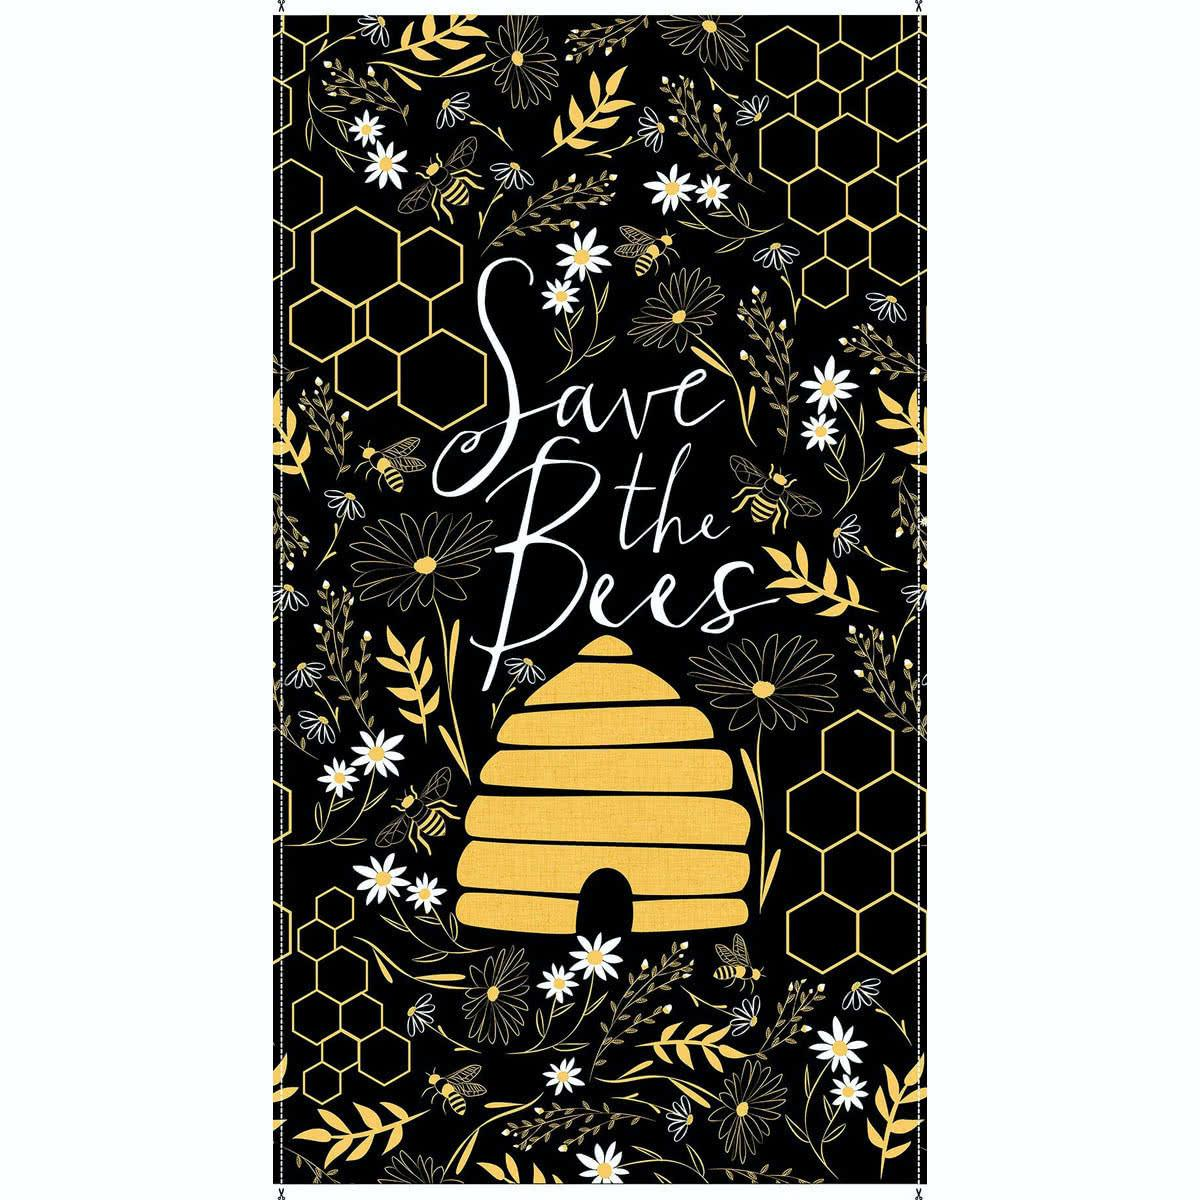 Save the Bees Panel - Black